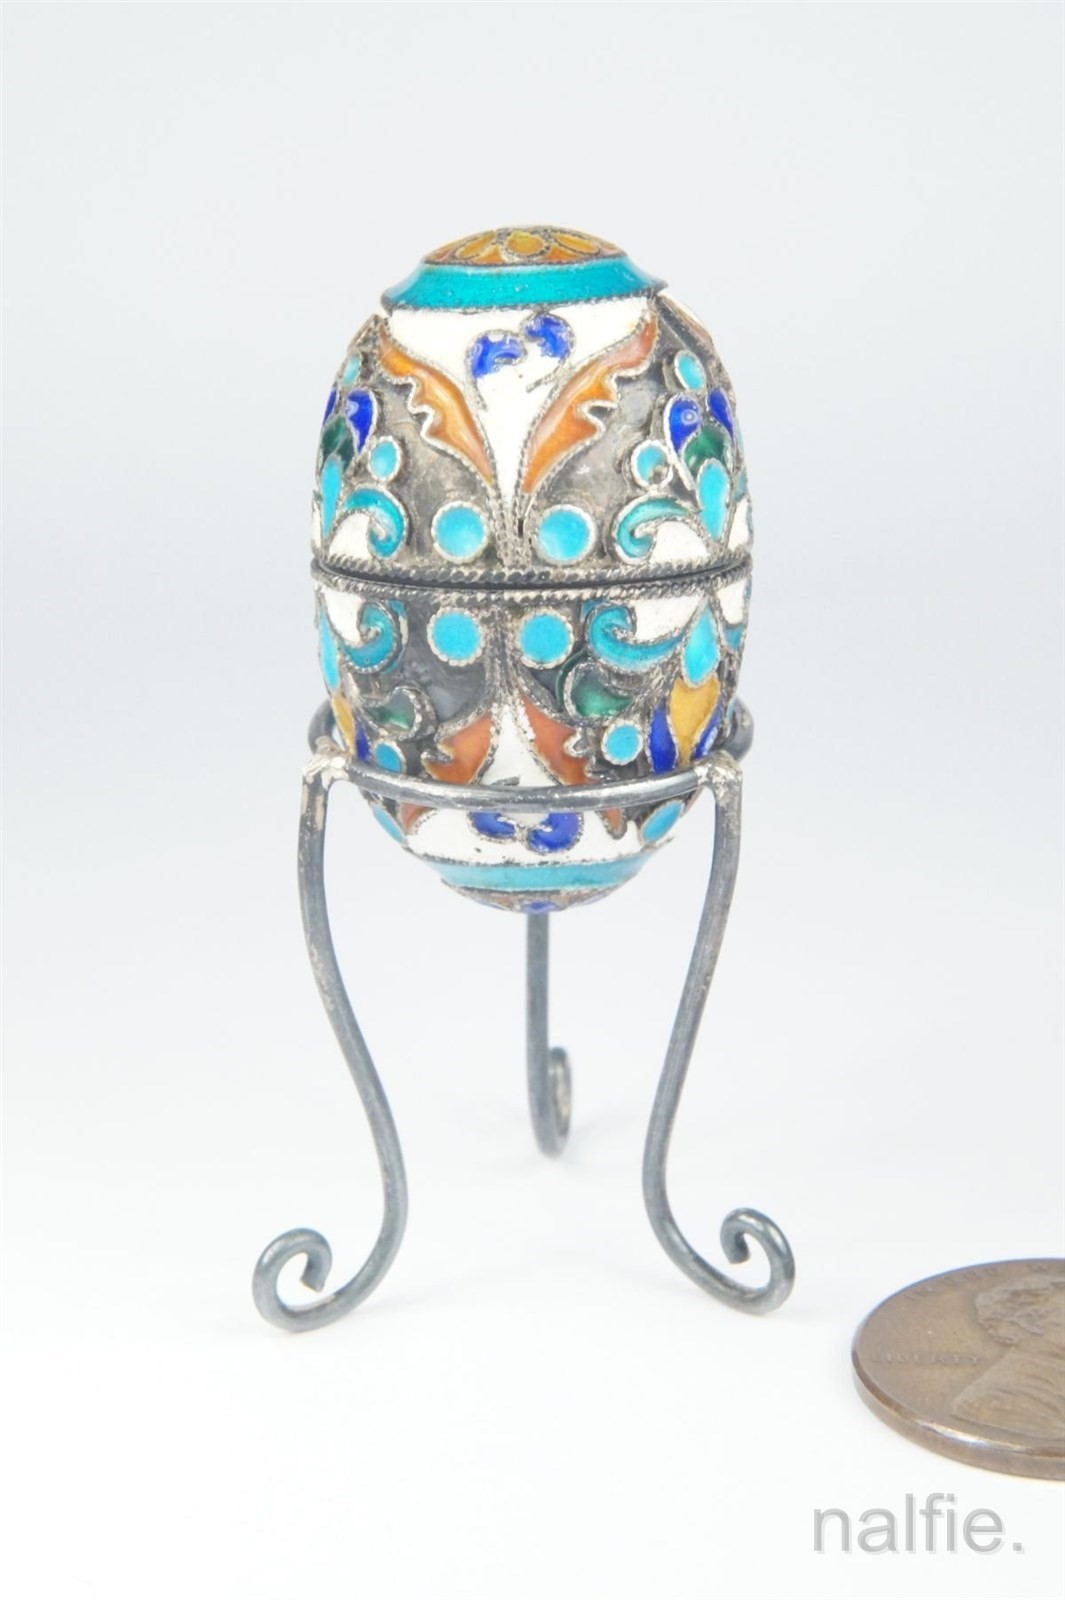 Antique russian silver cloisonn enamel egg w stand c1900 for Cloison stand